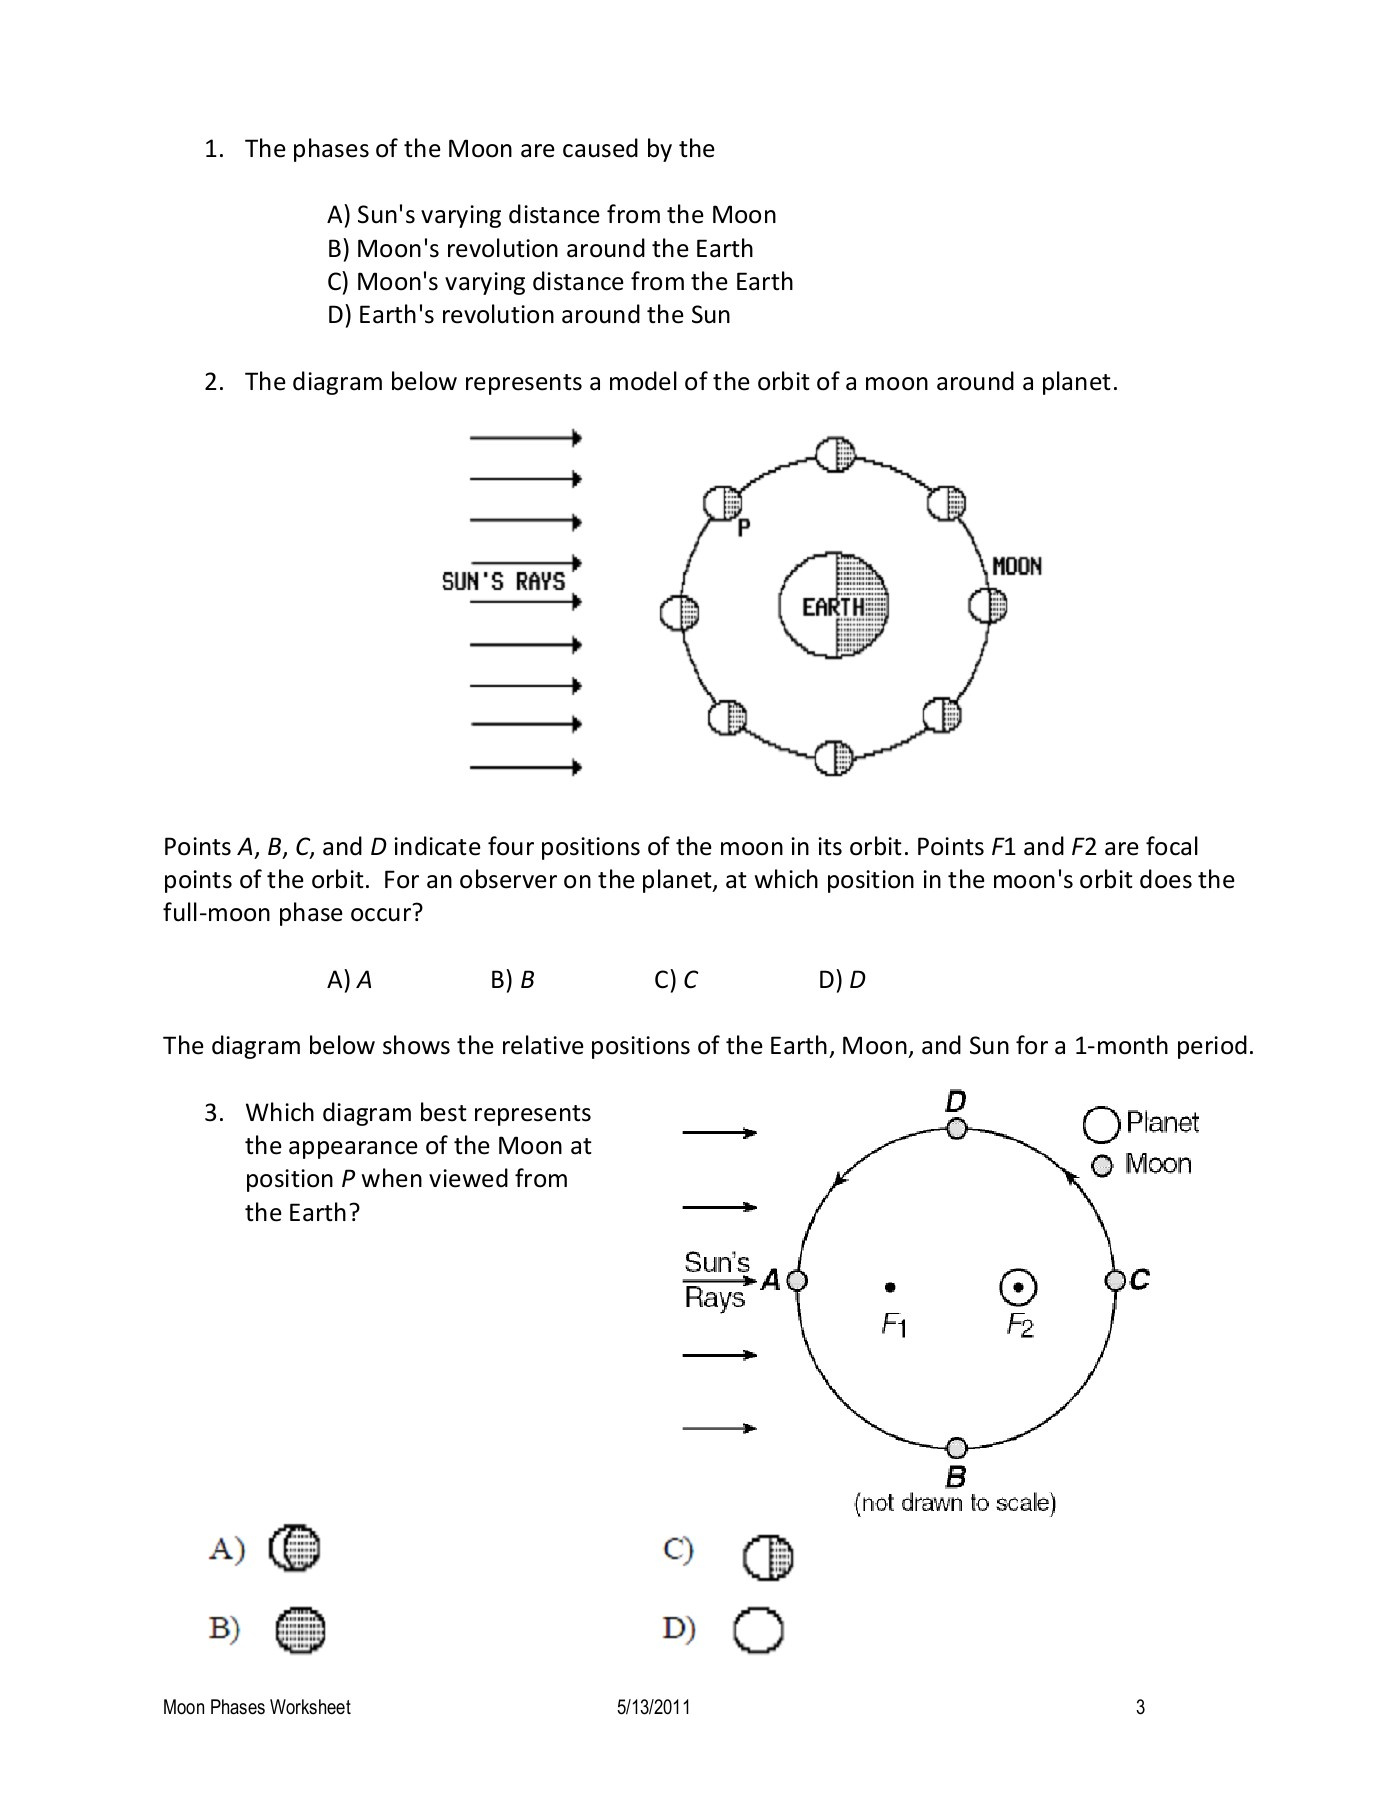 Moon Phases Worksheet Lunar Diagram First